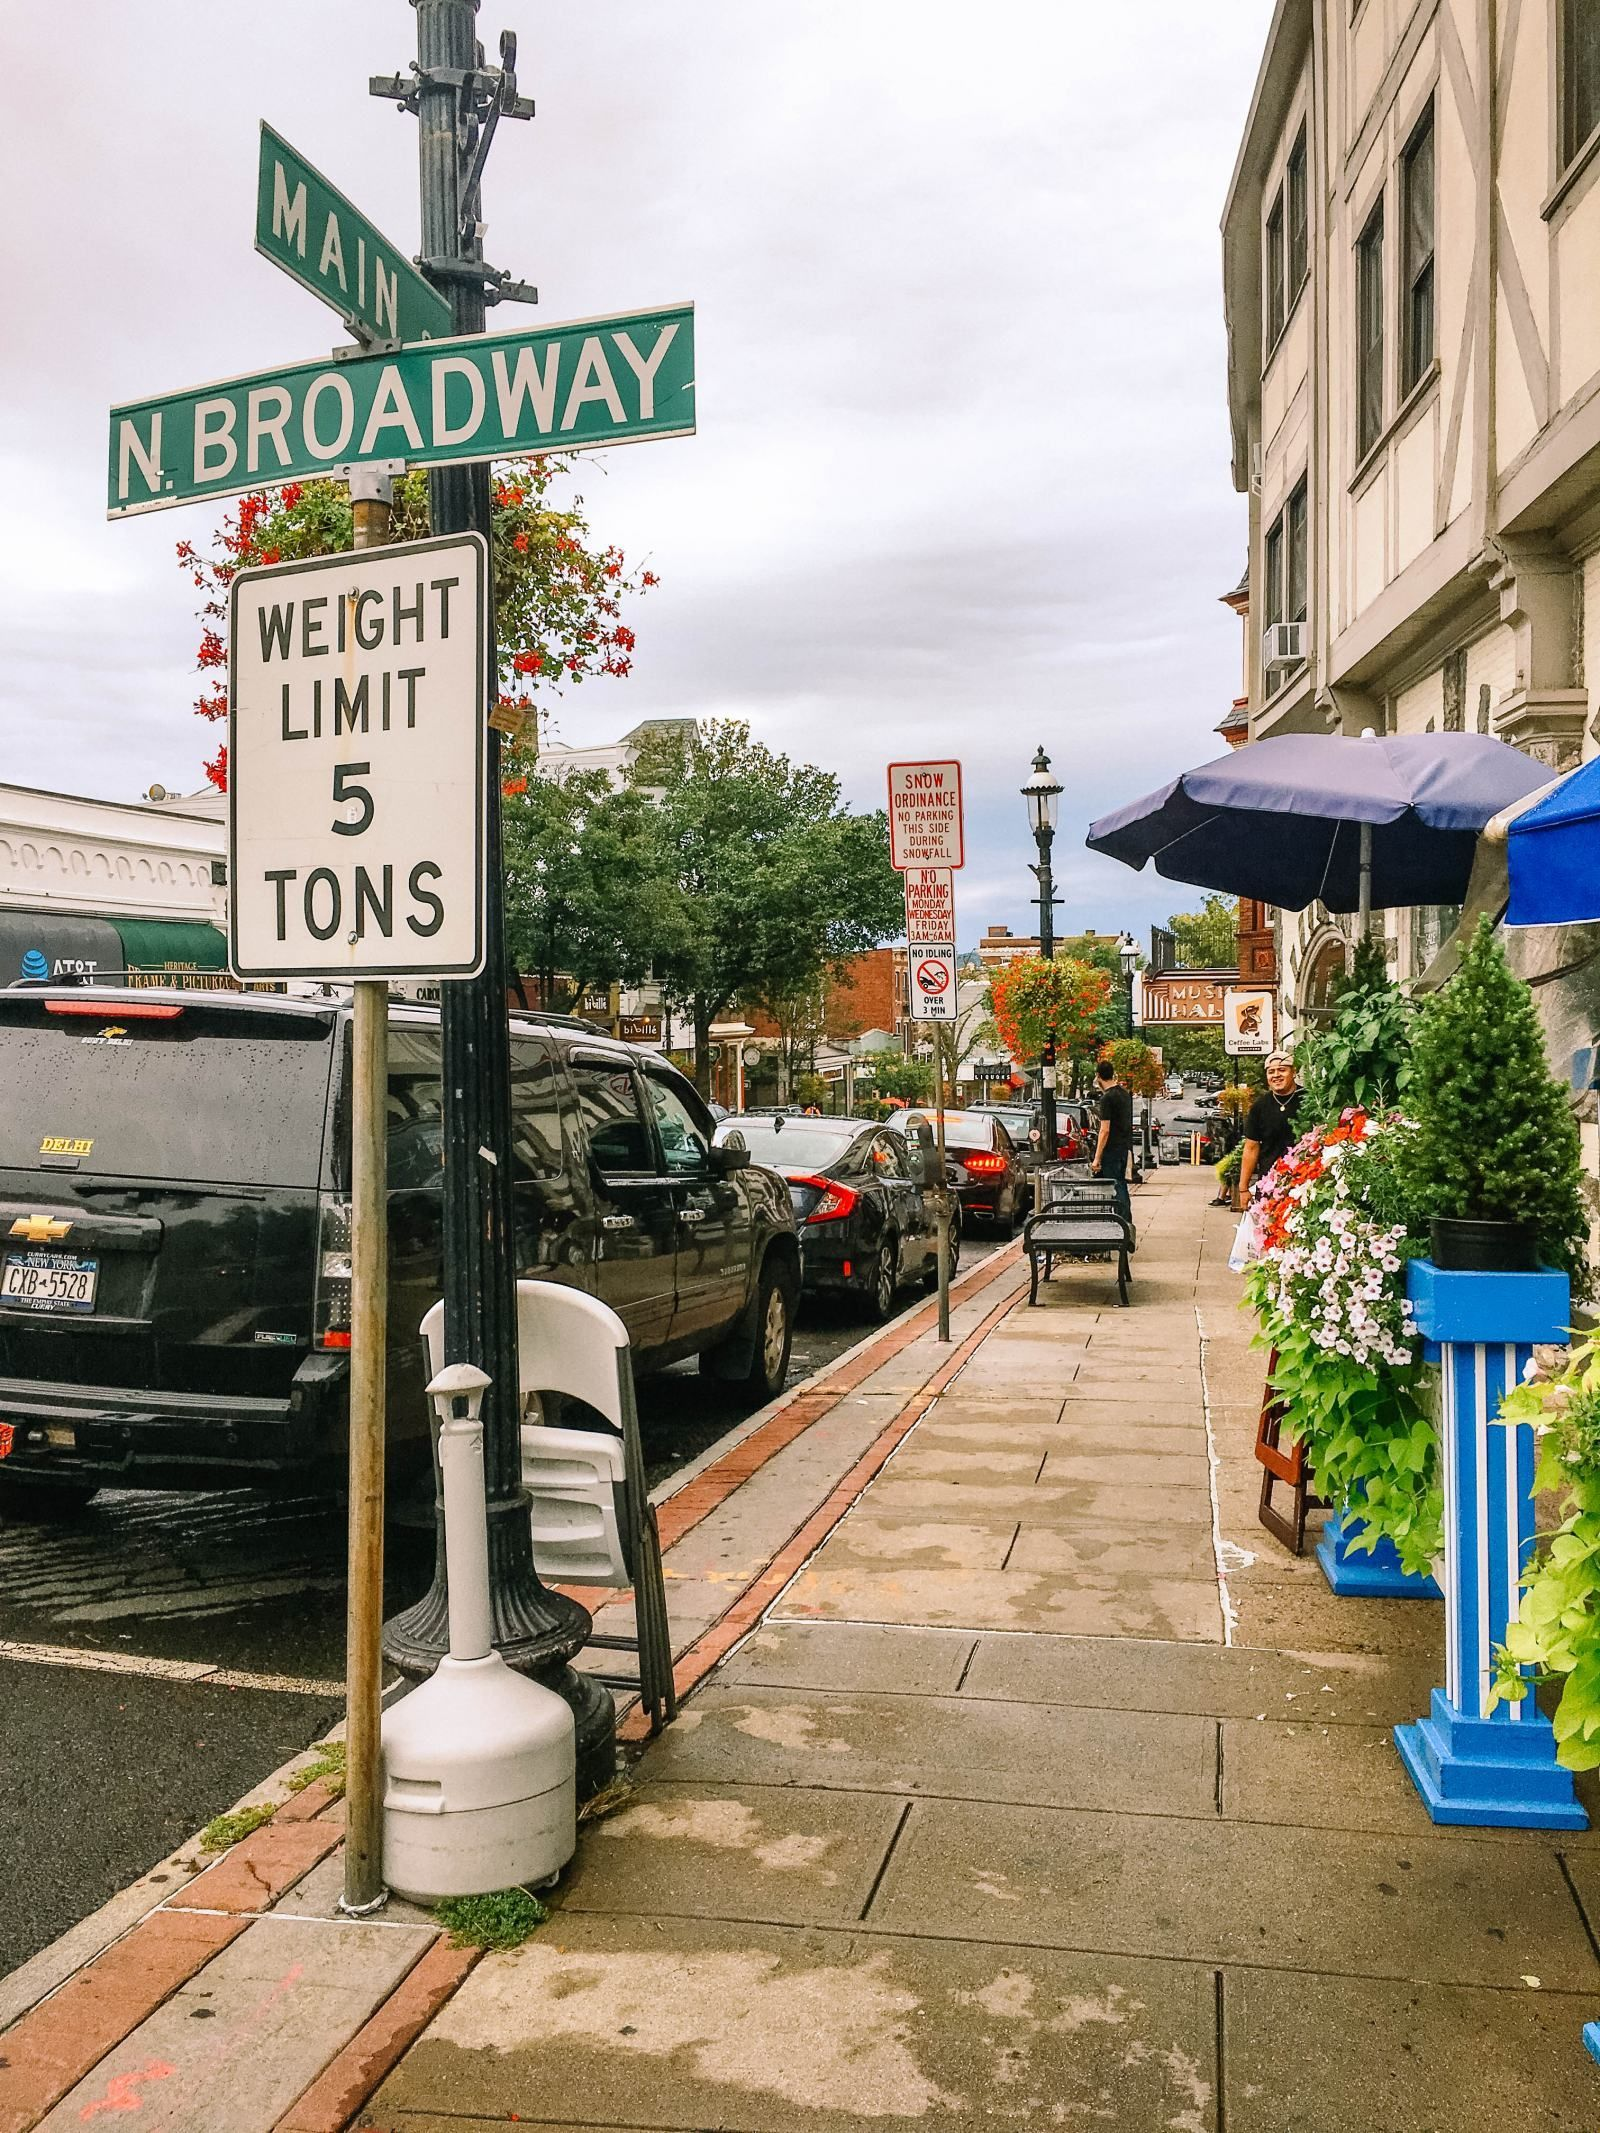 An October weekend in Tarrytown, New York Day trip to